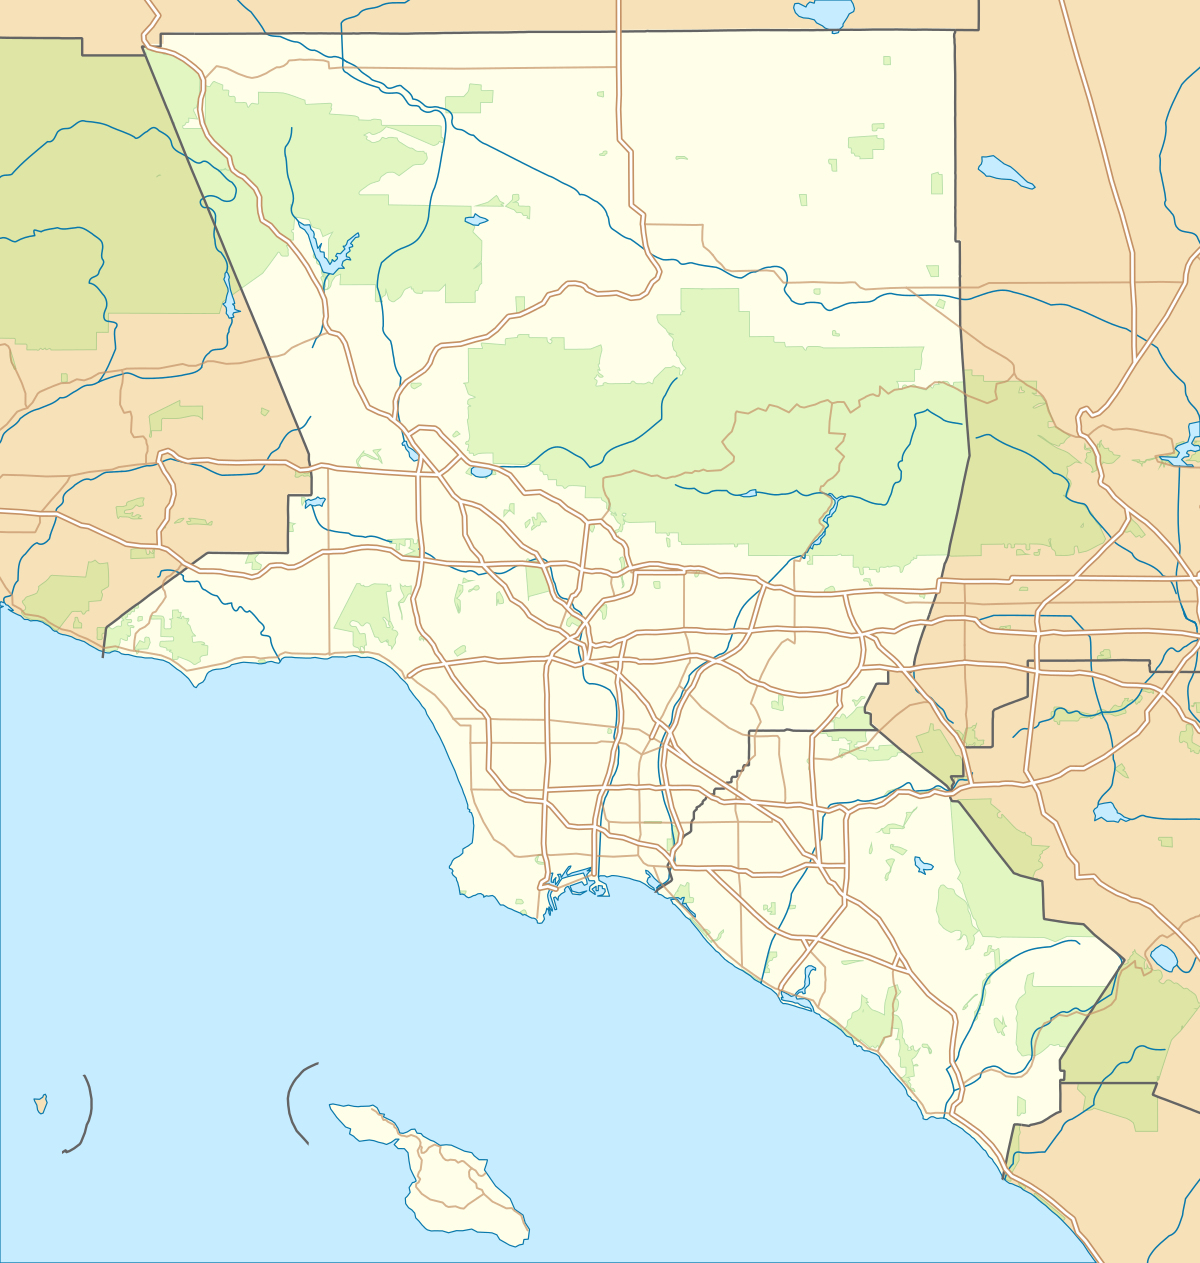 Px Usa Los Angeles Metropolitan Area Location Map Svg Map New Of - Where Is Lincoln California On The Map